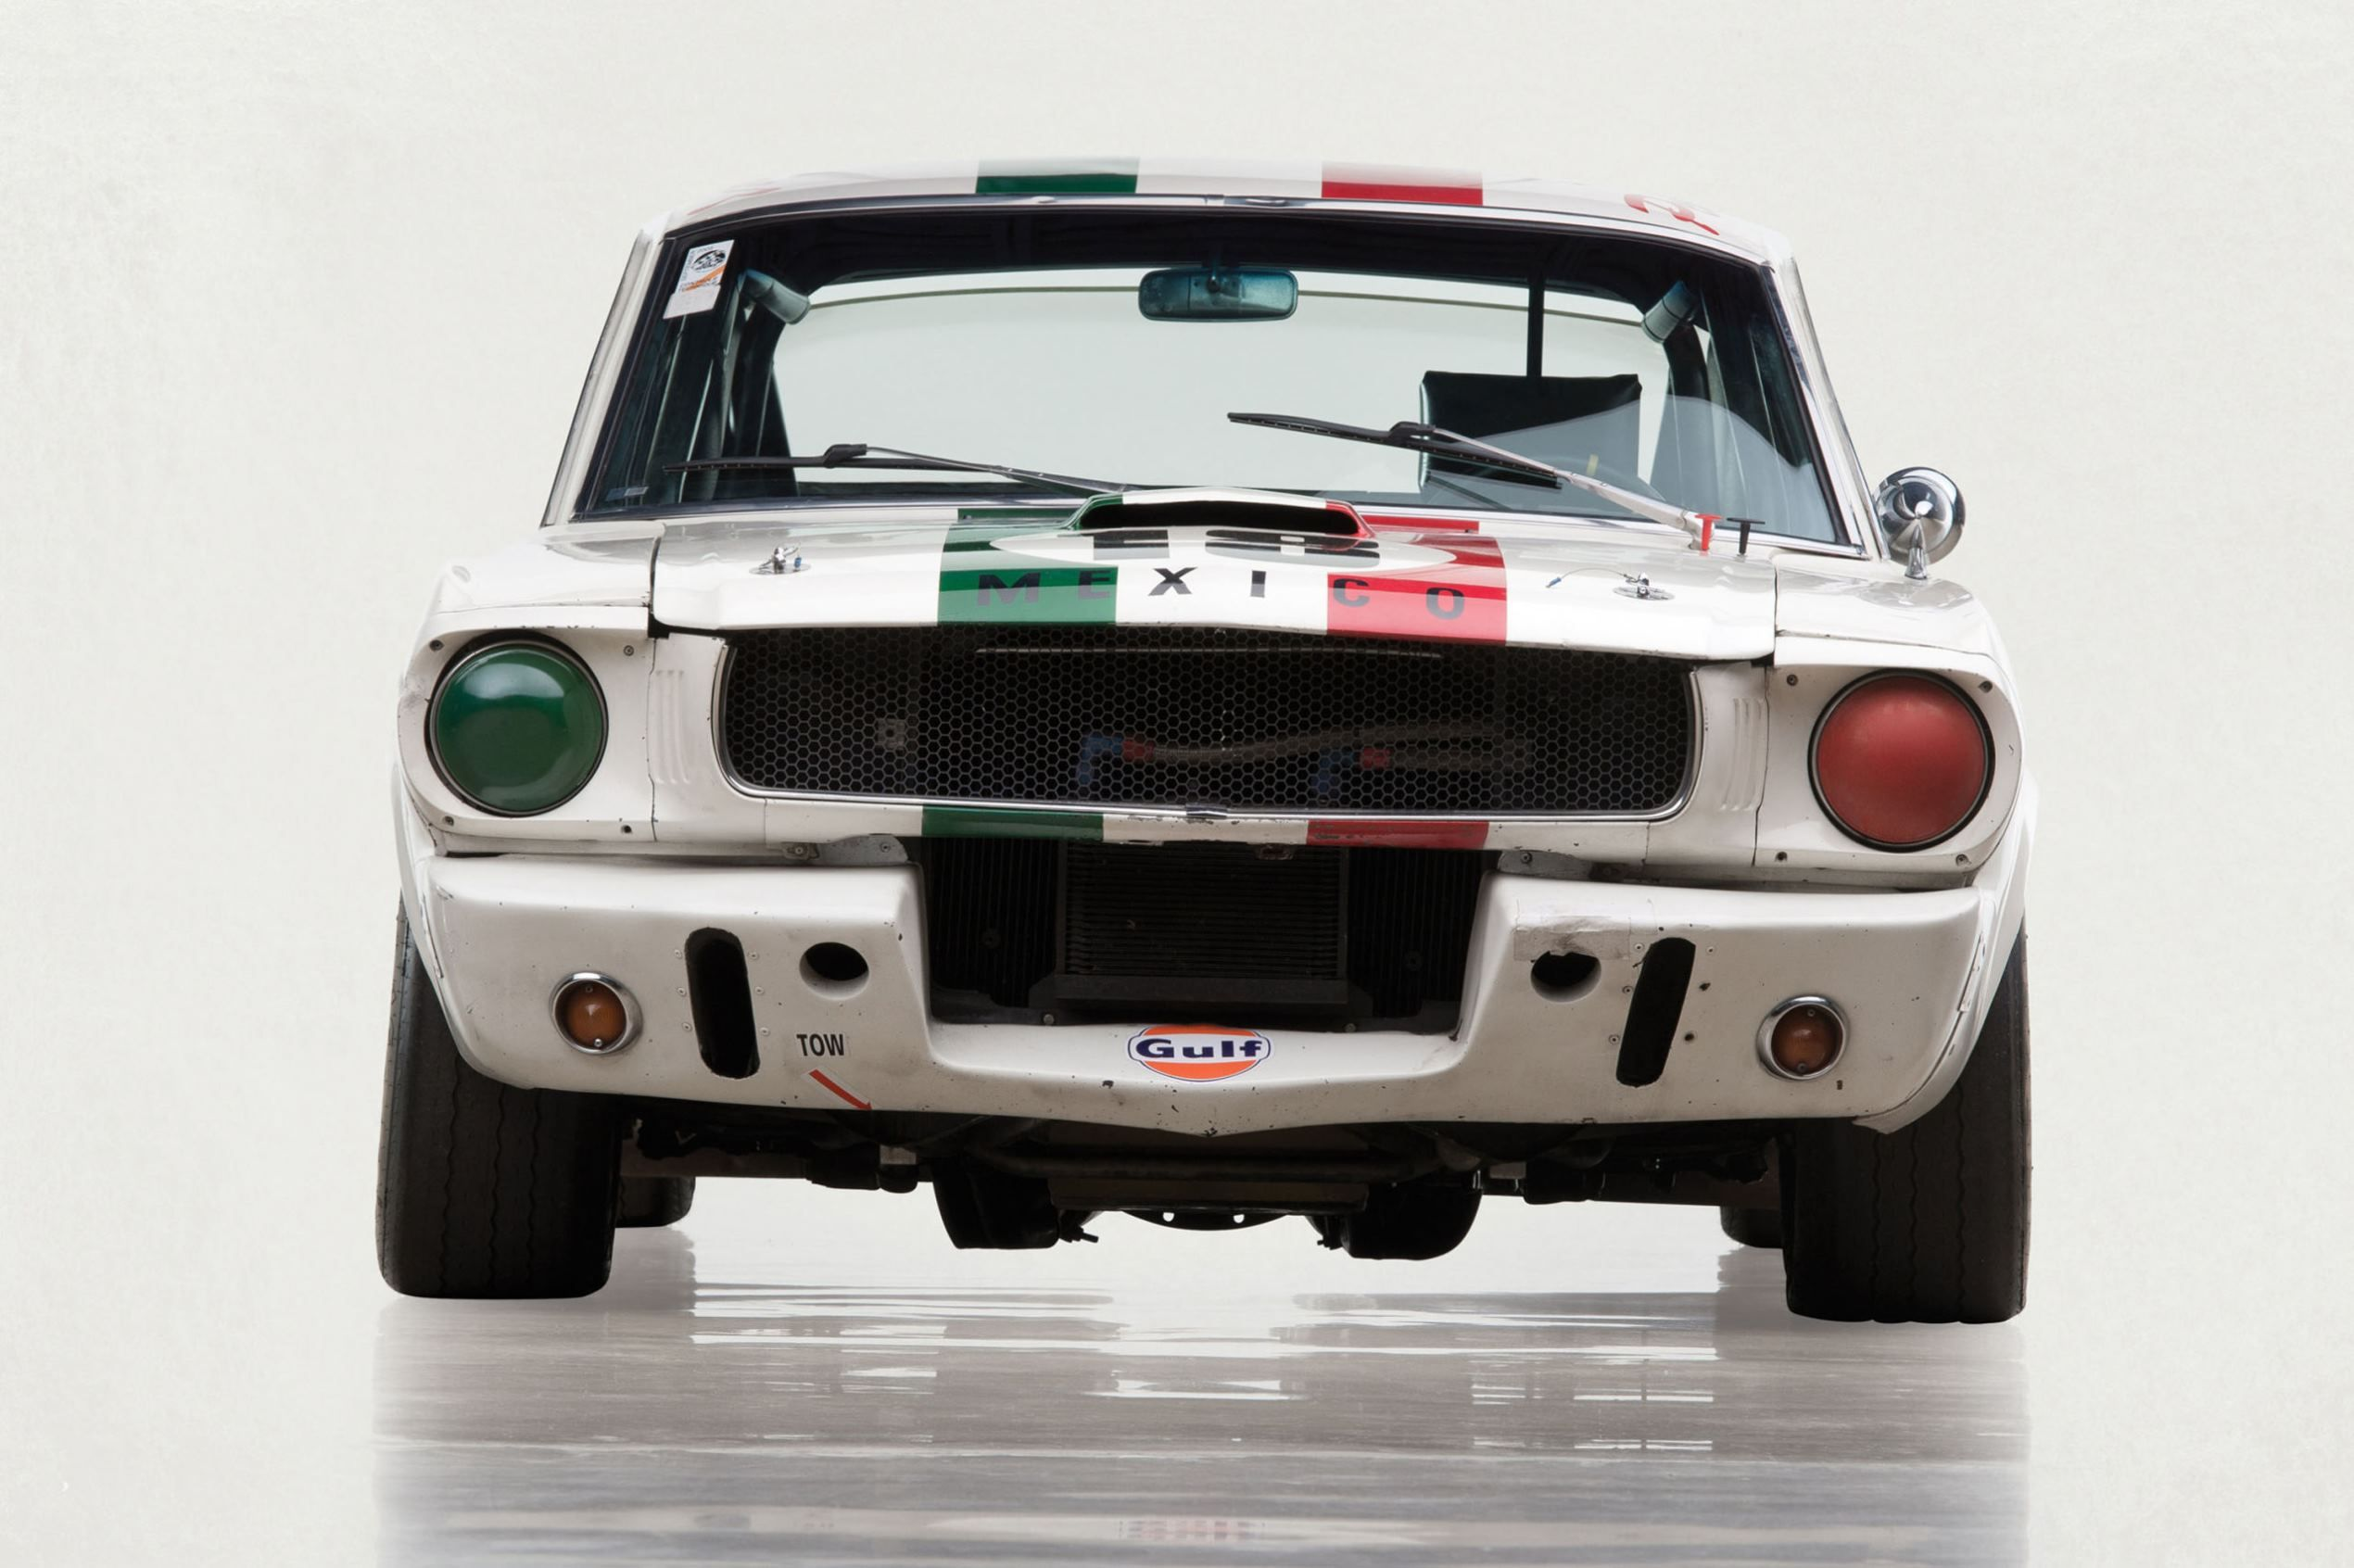 This 1965 Shelby Gt350 R Should Bring In 1m Or More Shelby Gt350r Ford Shelby Shelby